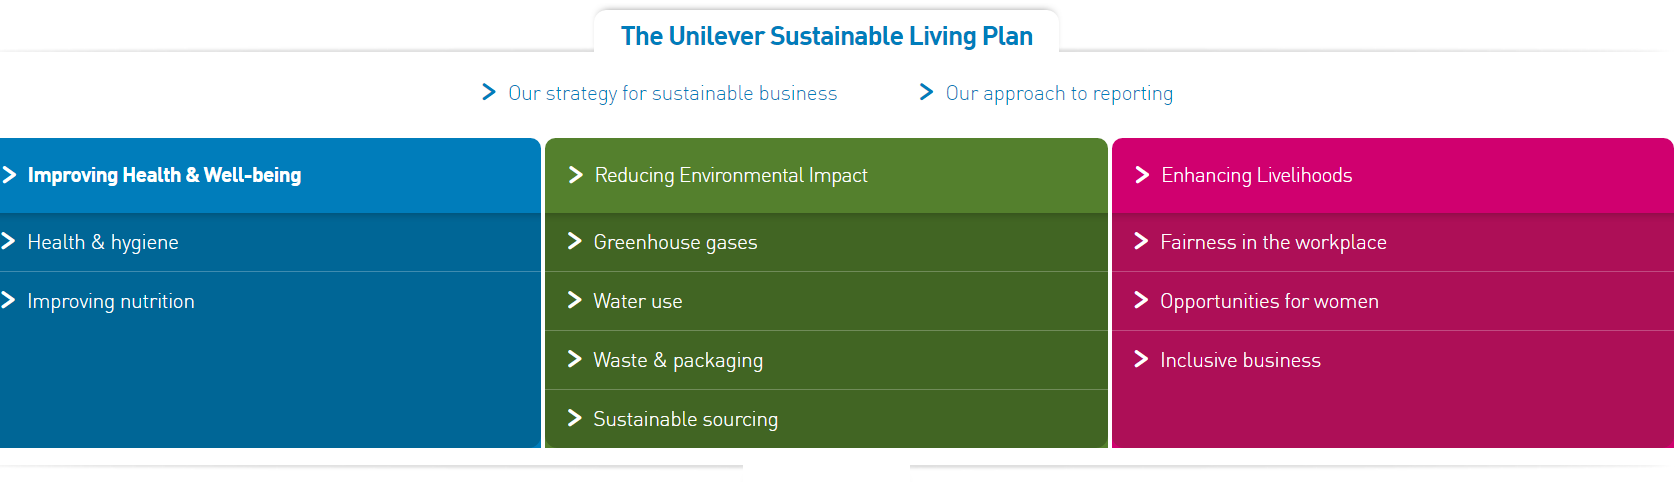 The Unilever Sustainable Living Plan, aligned with the Sustainable Development Goals.png